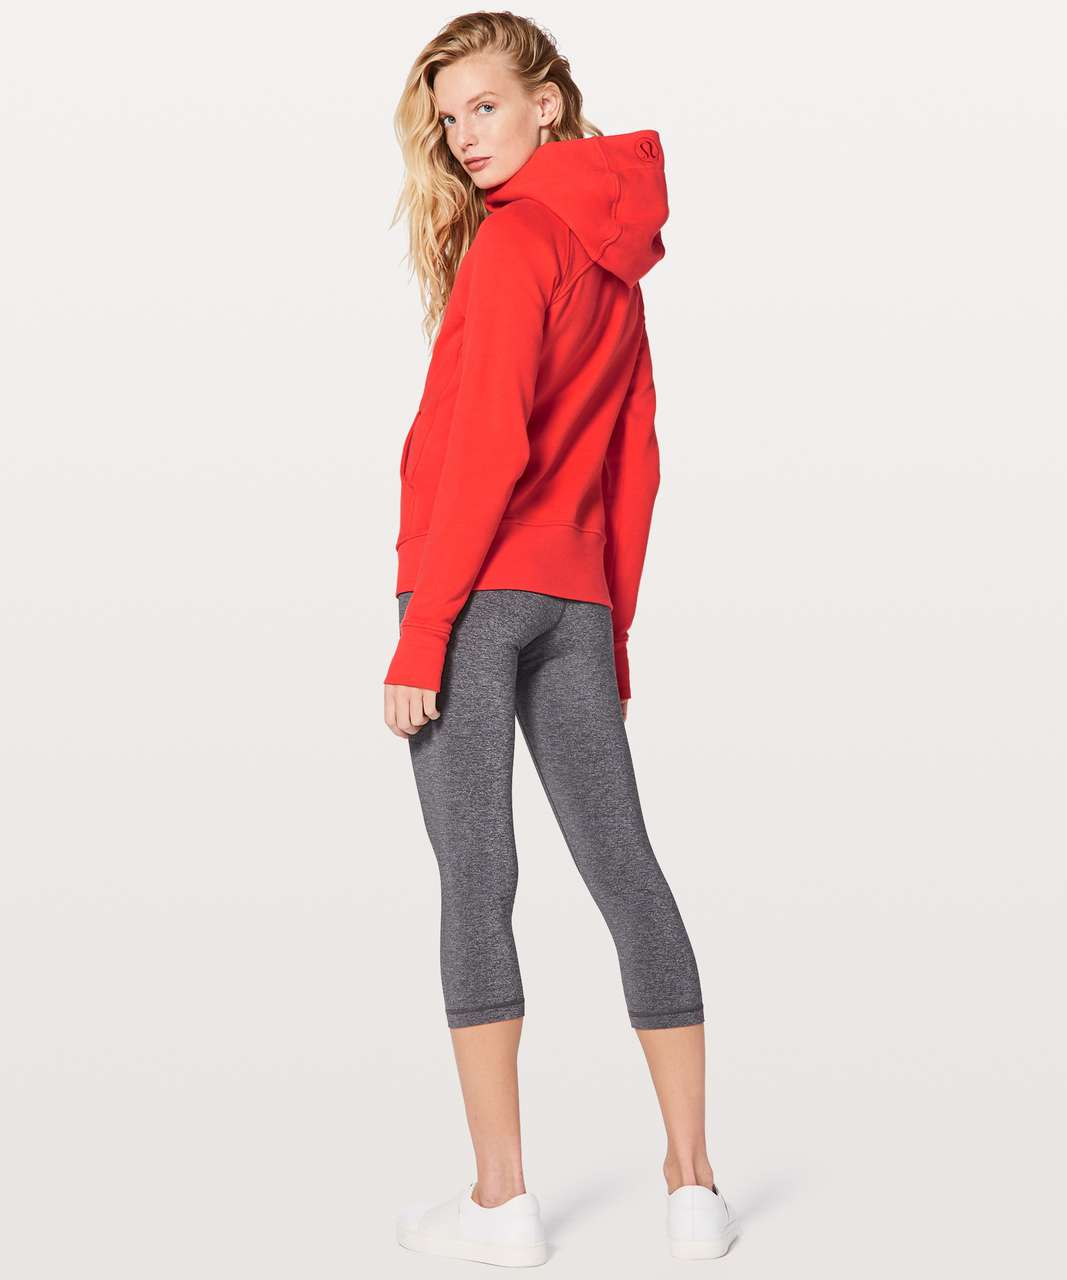 Lululemon Scuba Hoodie *Light Cotton Fleece - Vivid Flame